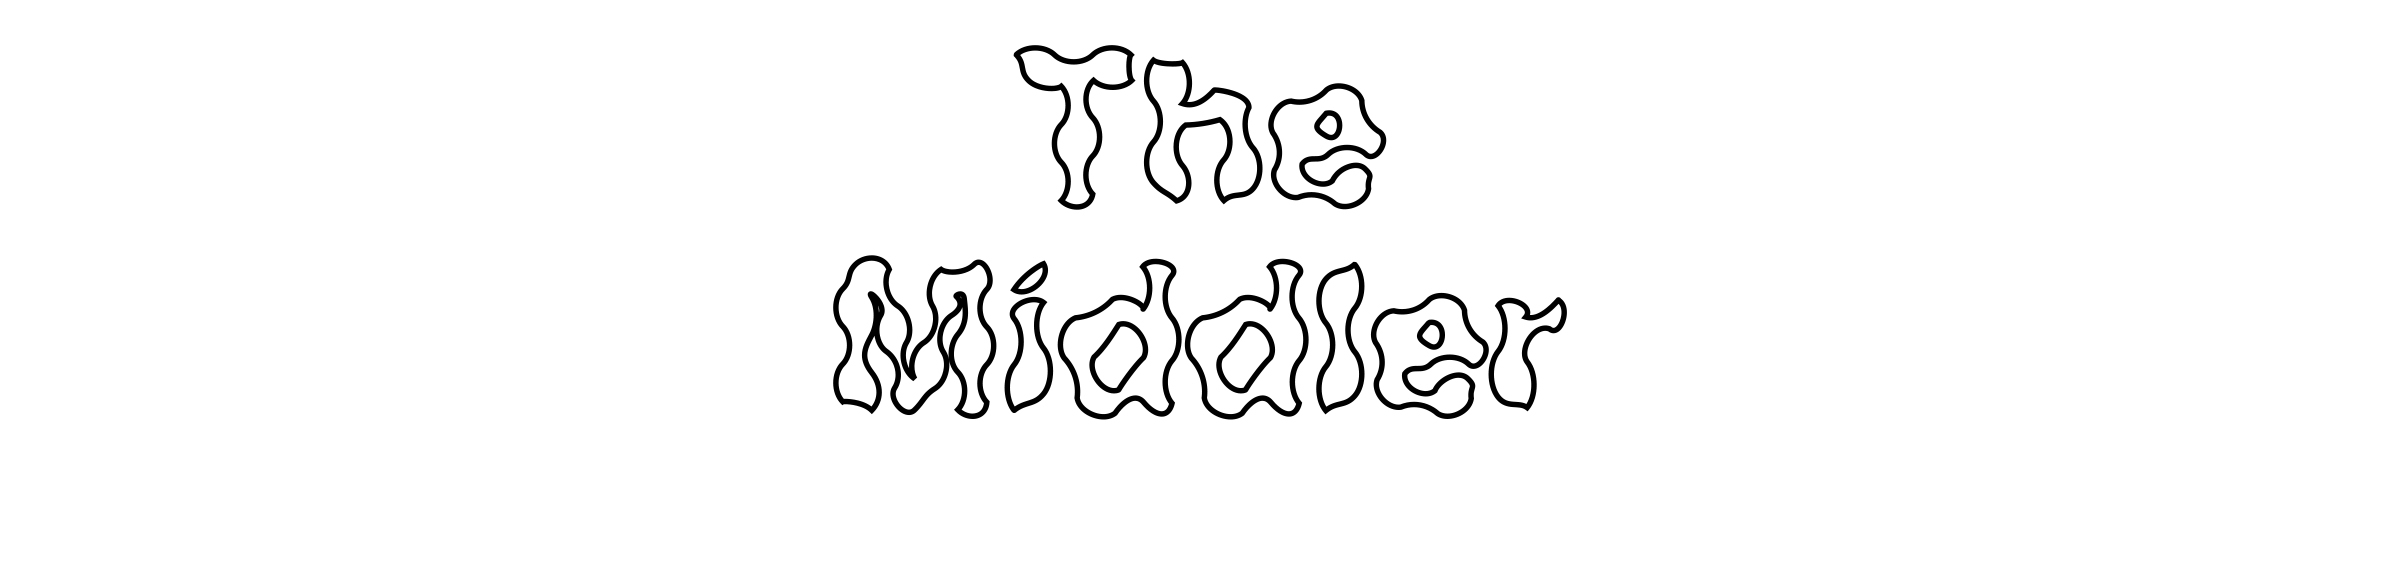 The Middler is proud to mark its one year anniversary by inaugurating the  Middler Art Fair, an occasion to showcase other galleries operating in the expanding field of the ephemeral and / or adaptive gallery model. Participating galleries are: Bannerette , Bug , Exploding Jezebel , Freddy , Shimizu Brand , and  Species .  Galleries are provided with one wall each and will present selections of their choice. Planned artists include: June Culp (presented by  Freddy ); Isabella Rodriguez (presented by  Species ); Jessica Friedman (presented by  Bug ); Marc Matchak and Elsif Crosby (presented by  Exploding Jezebel ); Eric Palgon, Amanda Friedman, Laura Hunt, and collaborative works by Rafael Delacruz & Chris Milic (presented by  Shimizu Brand ); plus a display of various works by  Bannerette . The Middler is presenting this occasion to celebrate the idea that if anything can be art, anywhere can be a gallery.  The fair will open by vernissage on Thursday June 22nd from 6 to 9 pm, followed by open hours Friday through Sunday, 12 noon to 6 pm. Following the fair, The Middler will present its next show in September with an exhibition to be announced soon.  Fore more information please contact Anthony Atlas at info@themiddler.com.